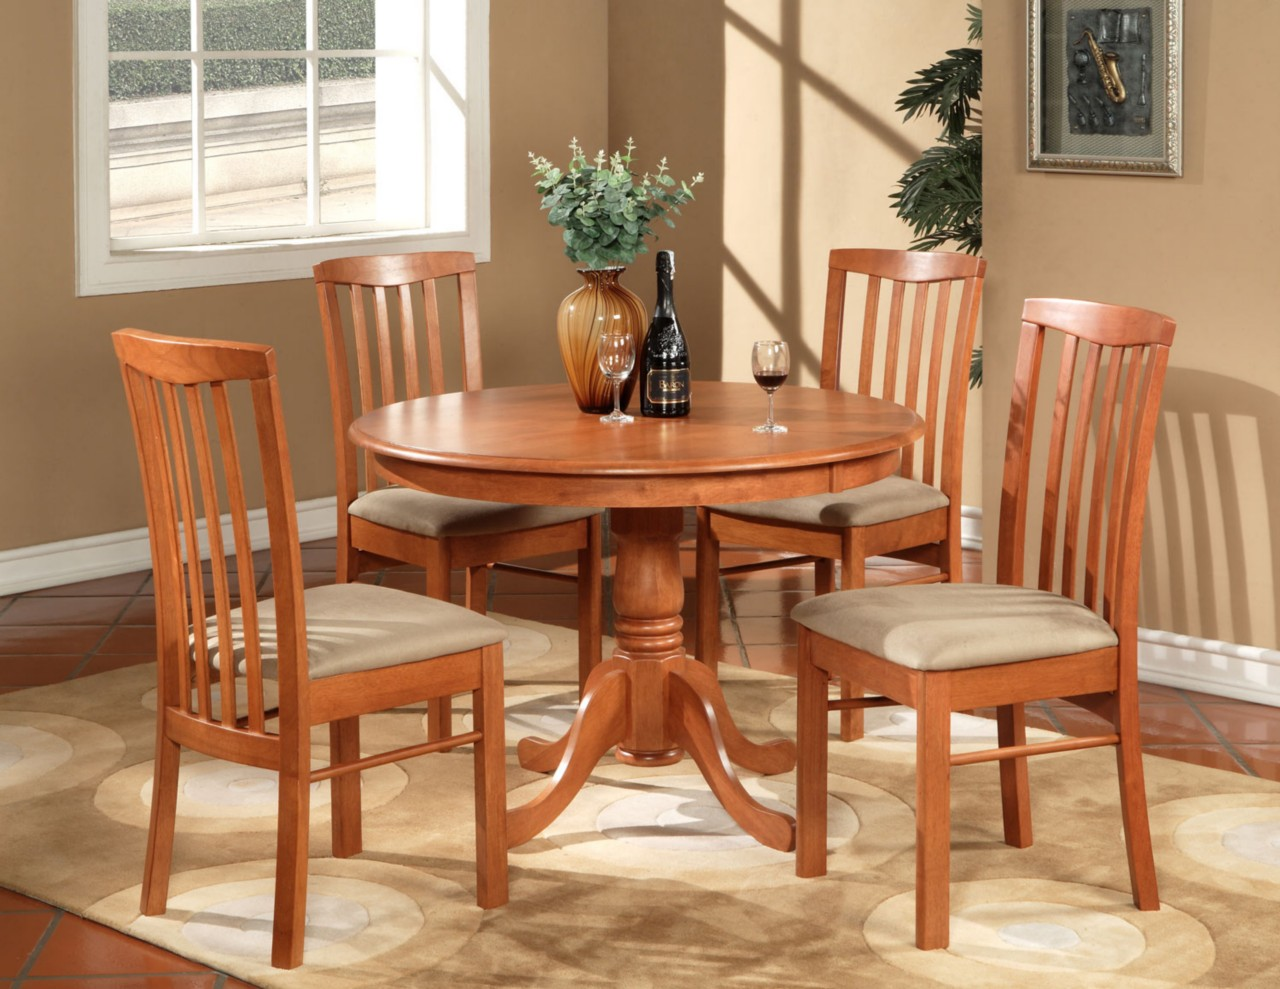 Round black kitchen table and chairs Photo   7. Round black kitchen table and chairs   Kitchen ideas